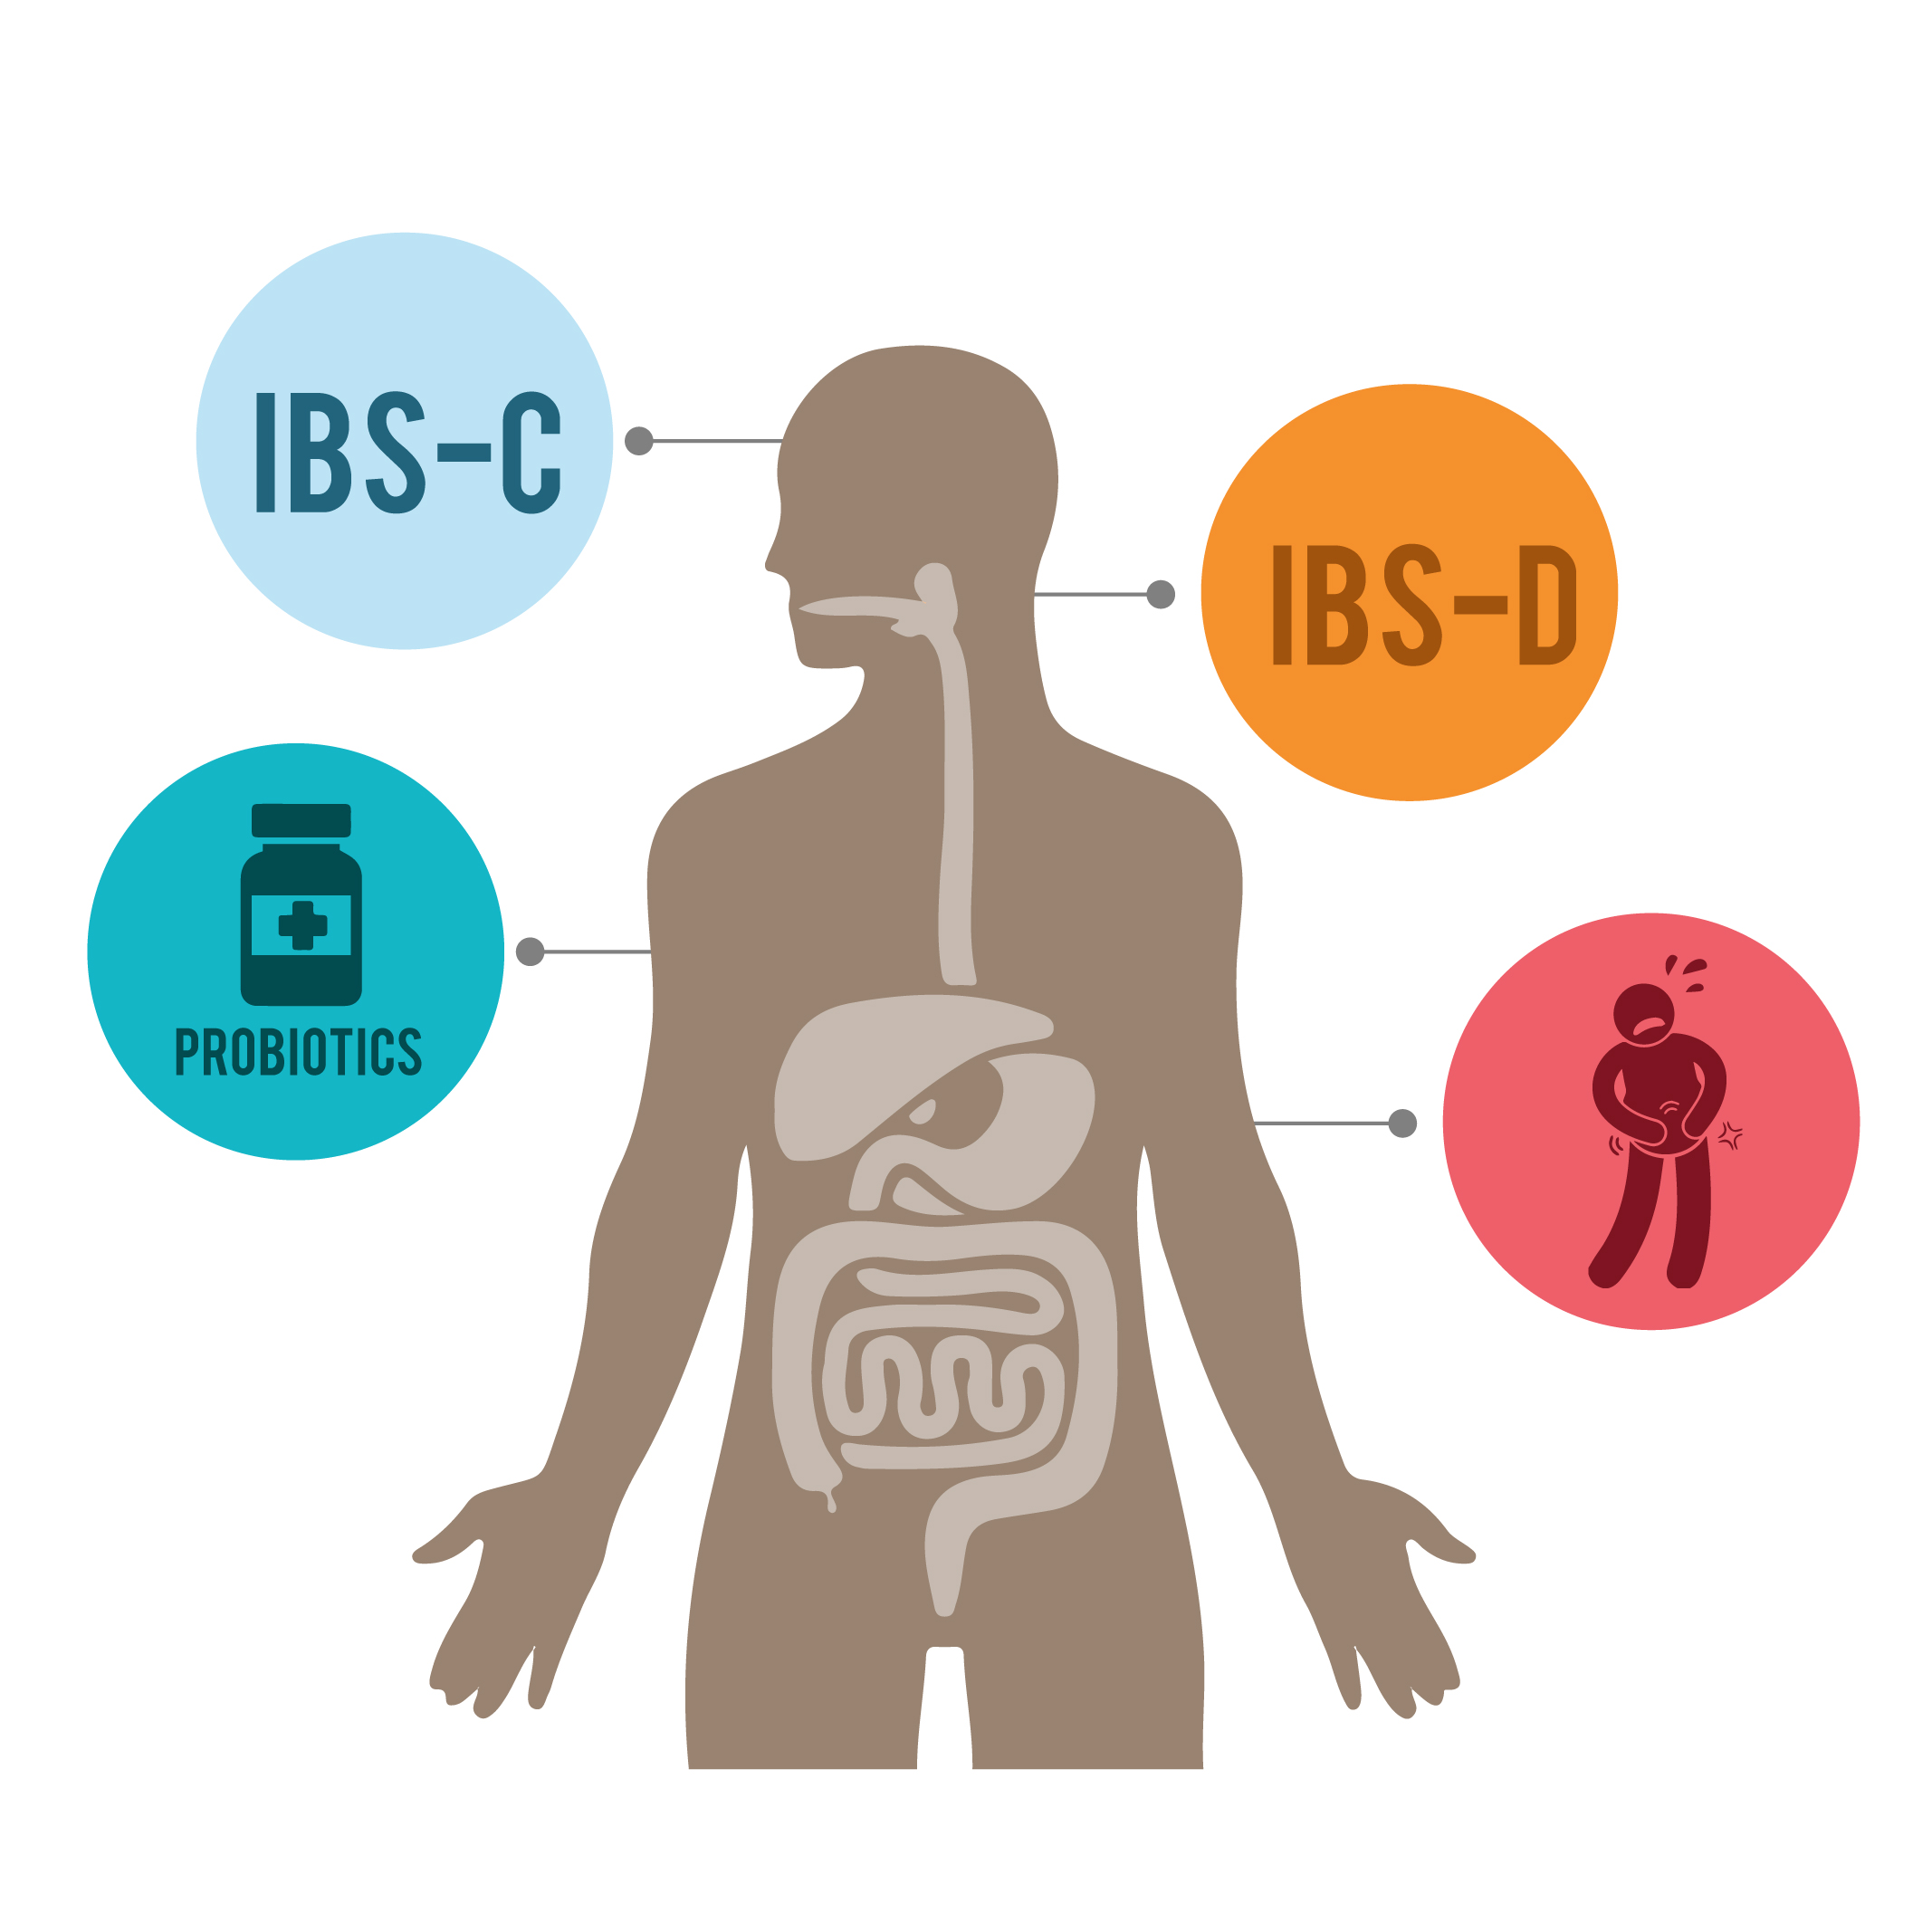 CH 5 - MORE WAYS TO TREAT IBS SYMPTOMS